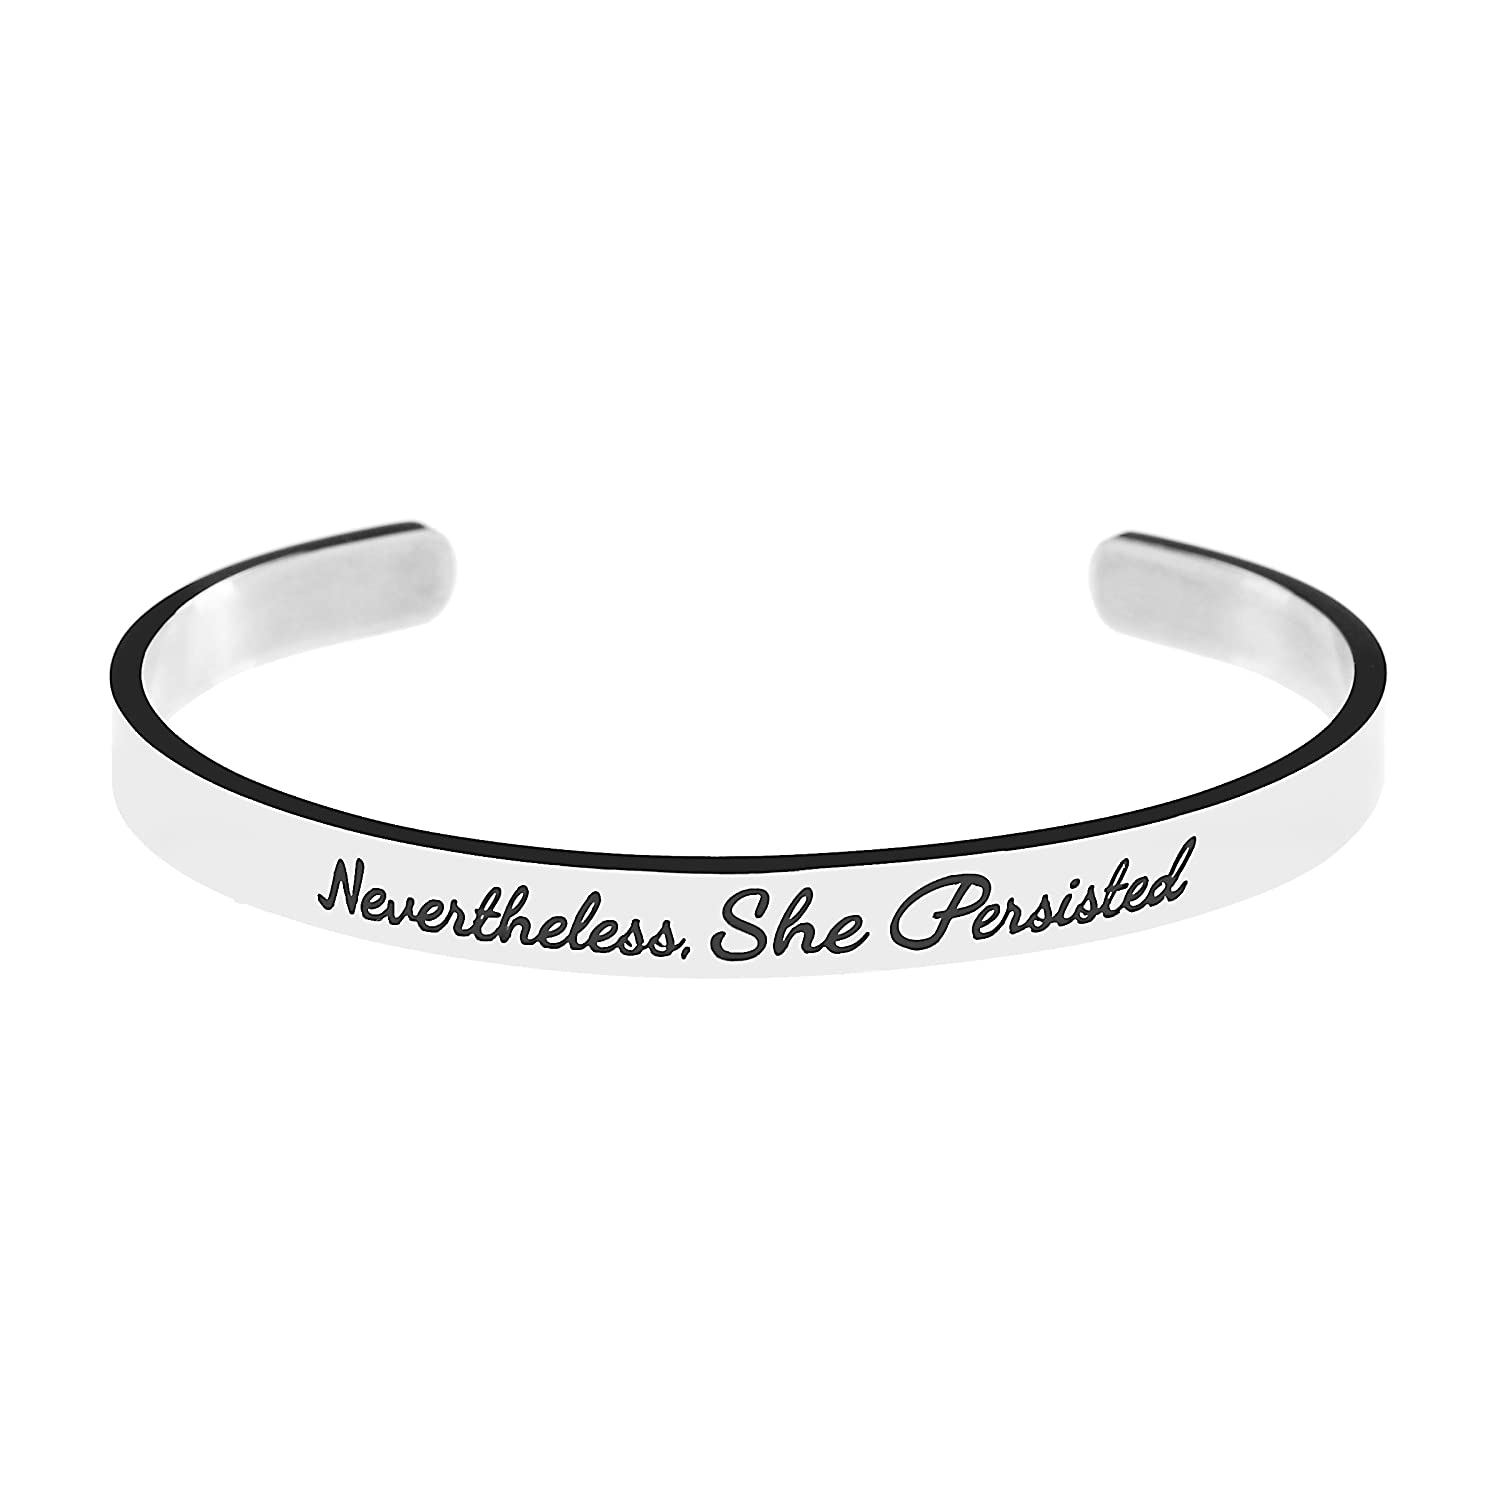 Yiyang Cuff Bracelet for Teen Girls Stainless Steel Bangle for Women Engraved Inspirational Quote Feminist Message Nevertheless She Persisted